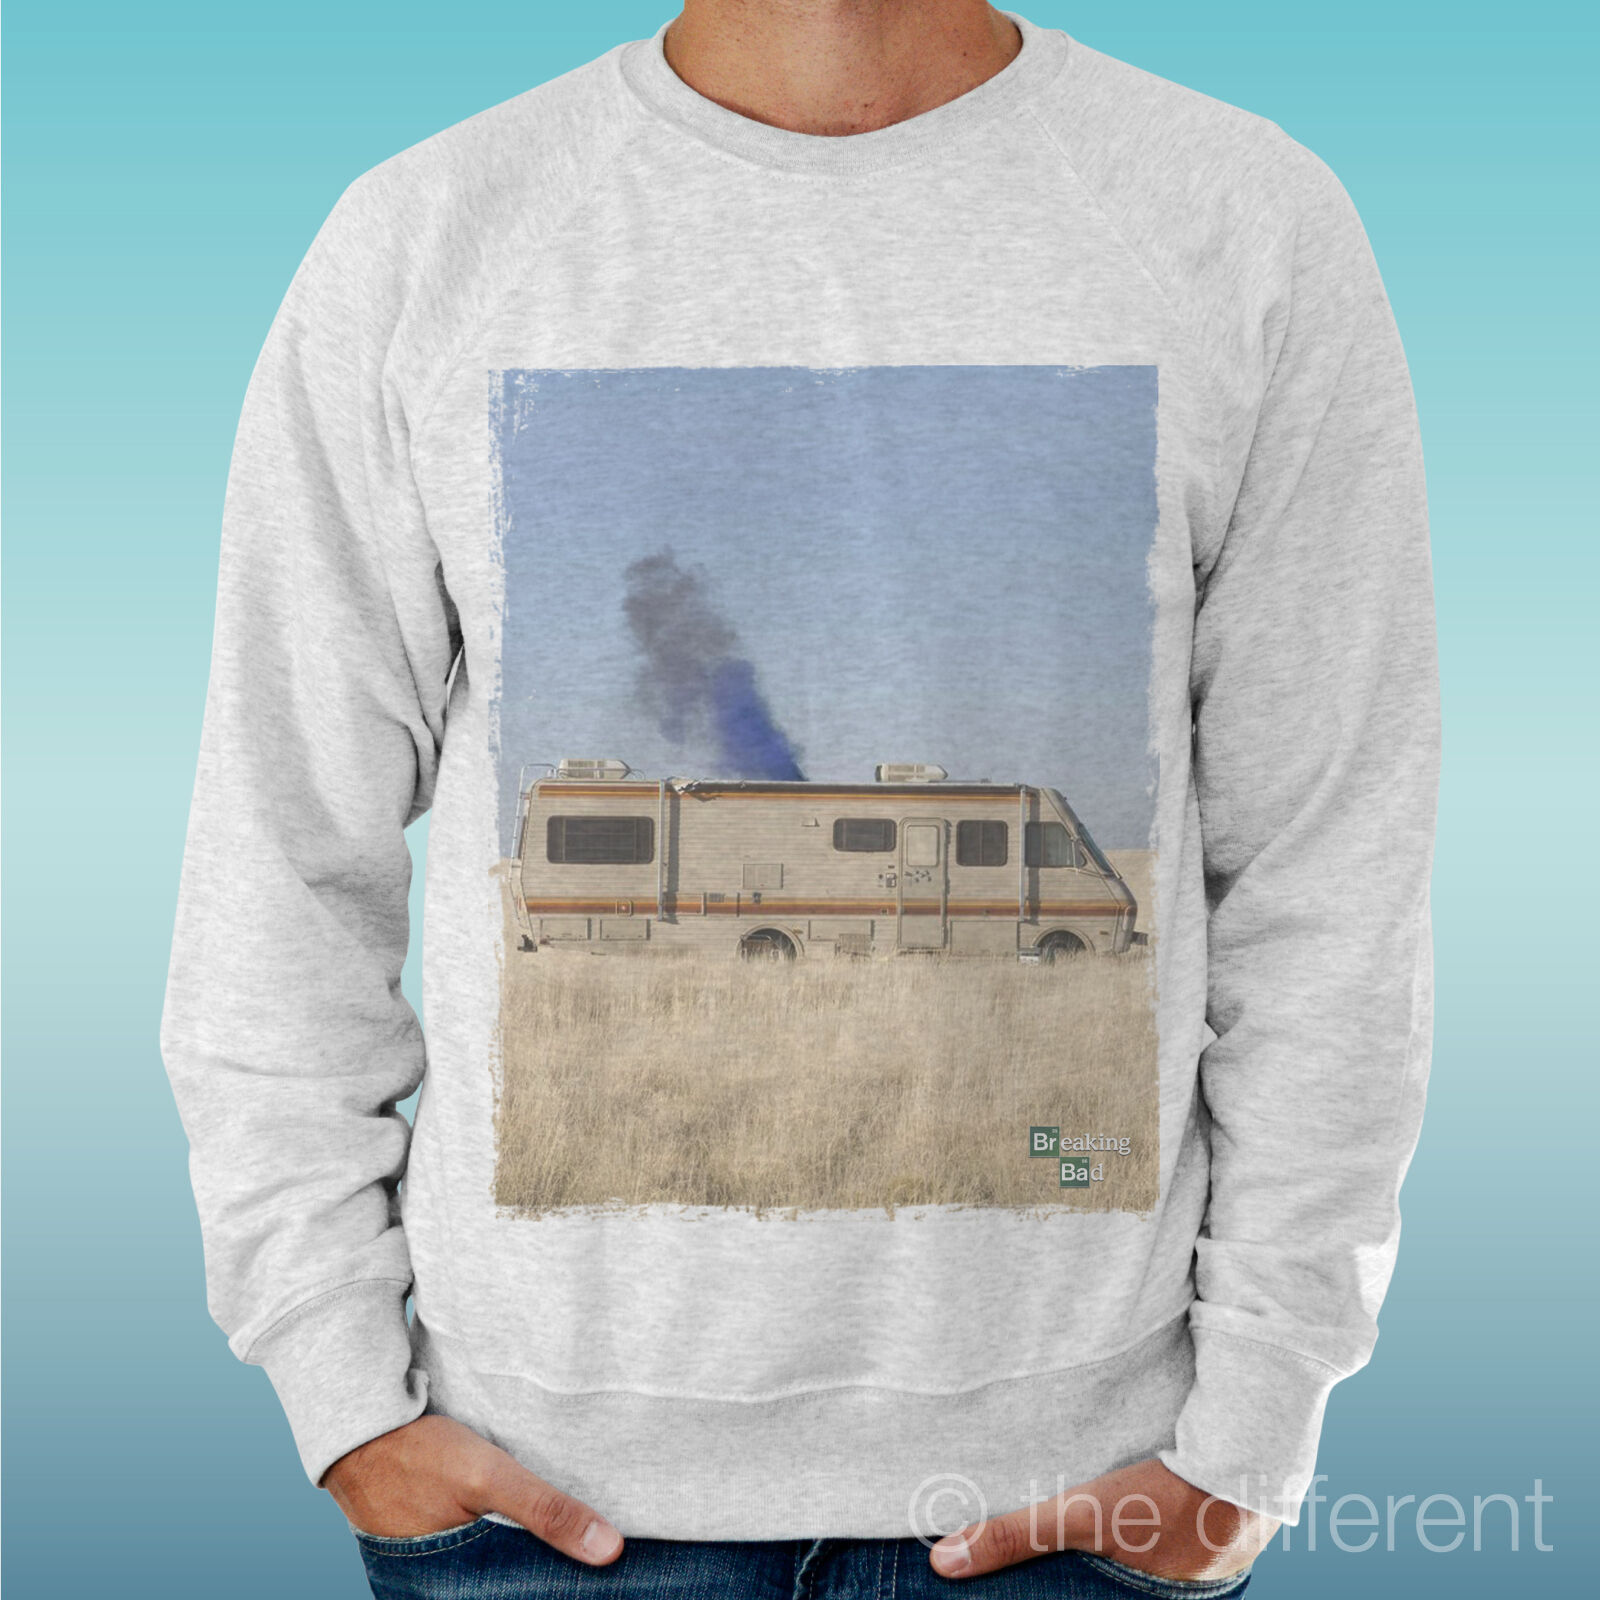 MEN'S SWEATSHIRT LIGHT SWEATER LIGHT GREY GREY  BREAKING BAD CAMPER